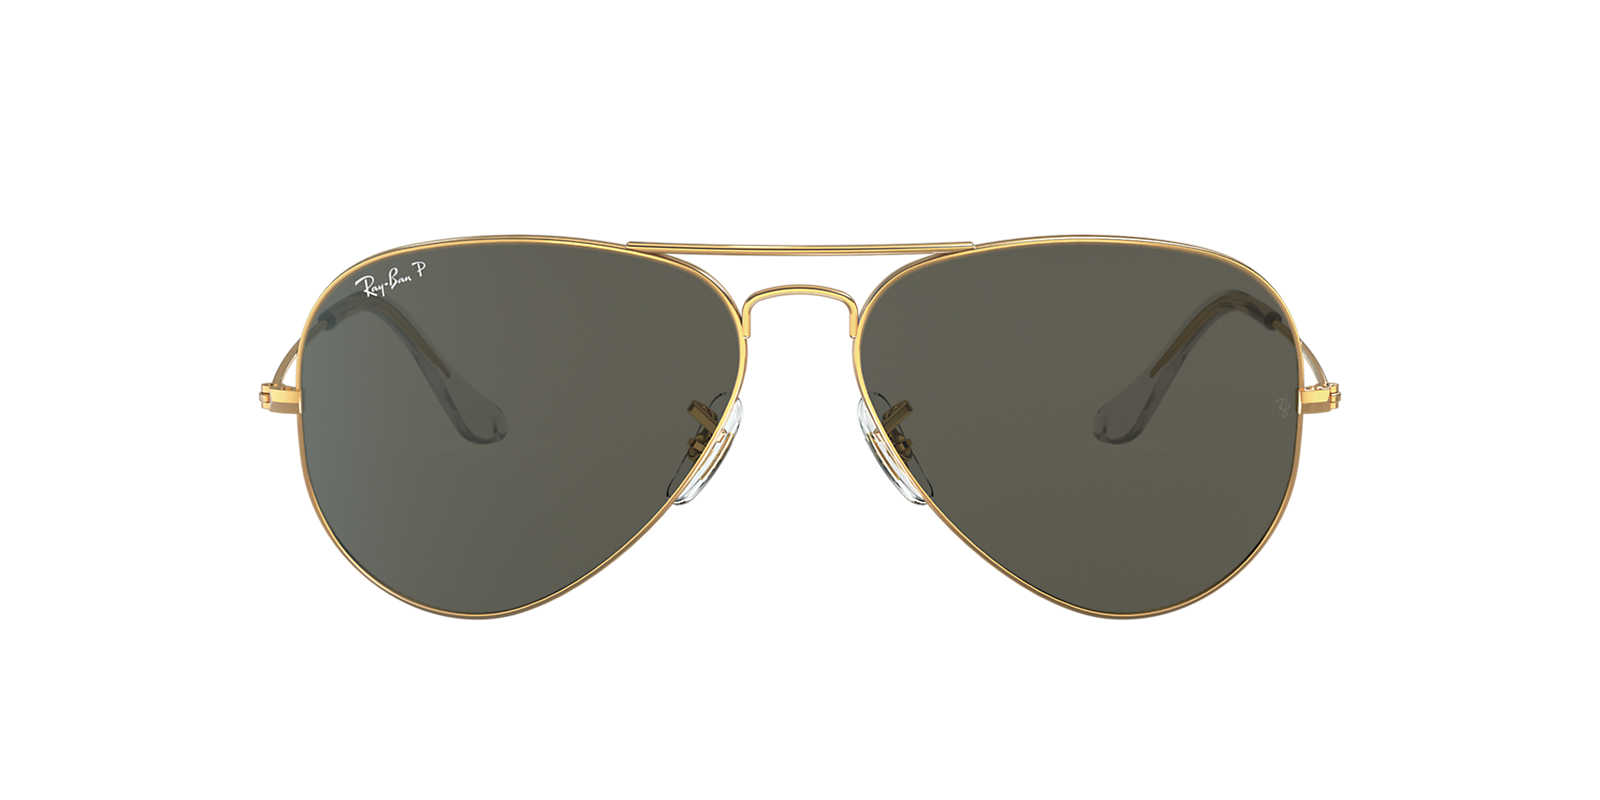 ray ban rb3025 original aviator sunglasses  Ray-Ban RB3025 58 ORIGINAL AVIATOR 58 Green \u0026 Gold Shiny Polarized ...